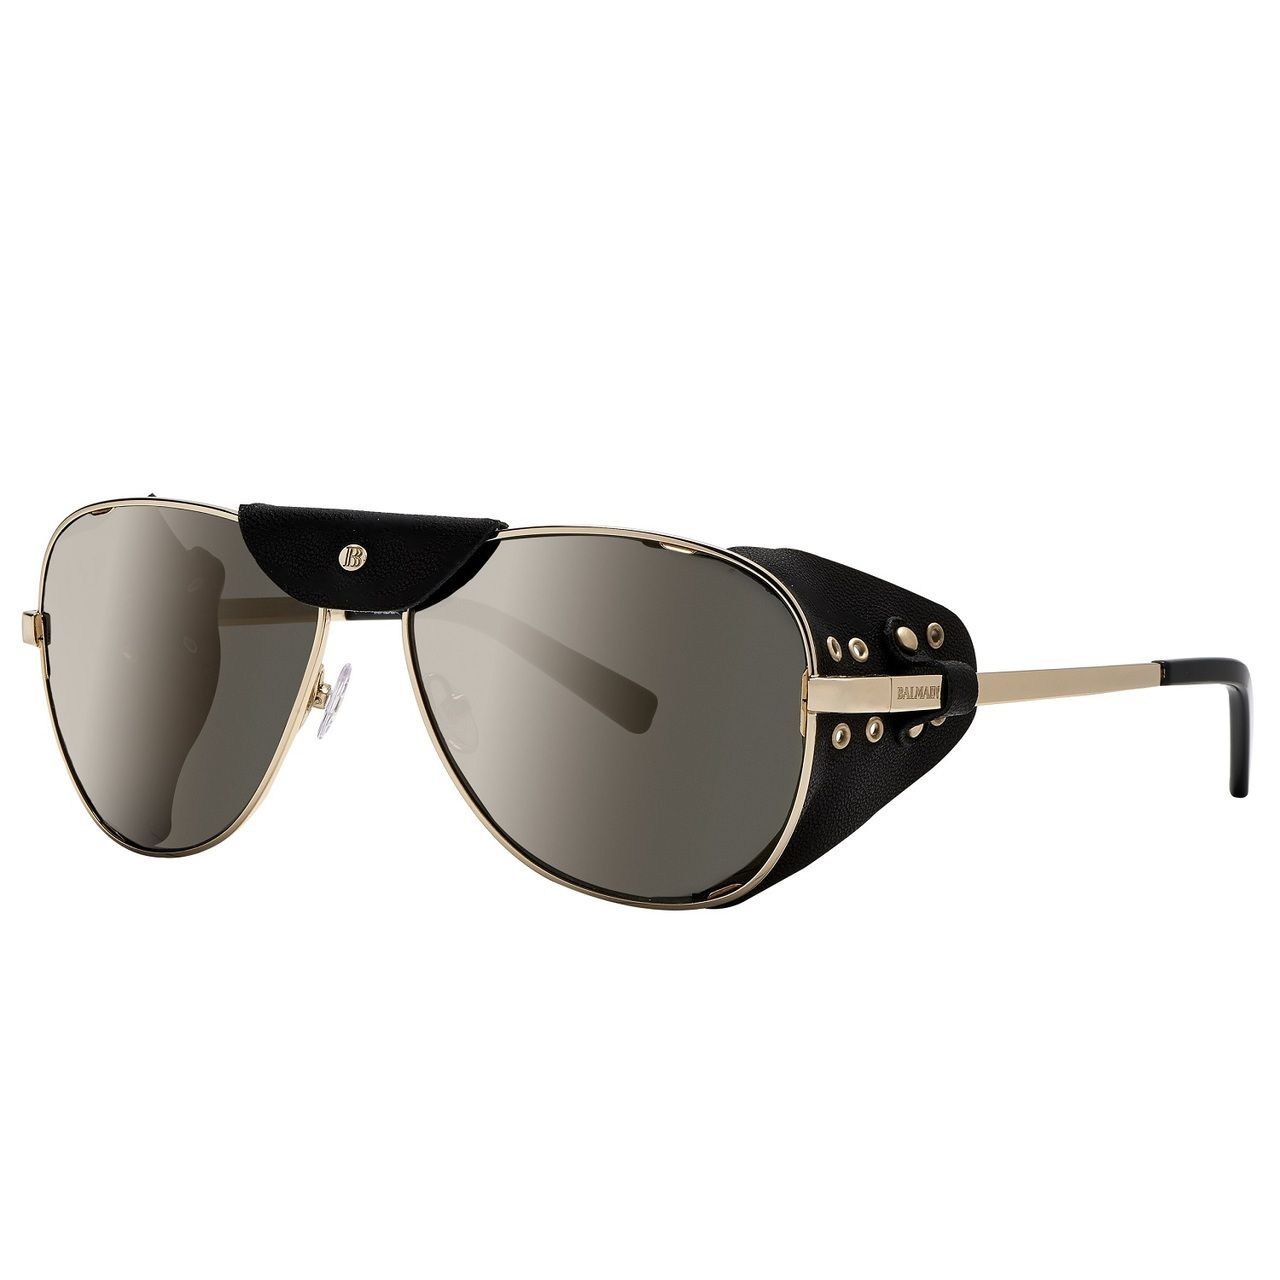 3637e14a0f67e1 Balmain 'Limited Edition' metal and leather aviator sunglasses |  CondemnedtoBeFree.com